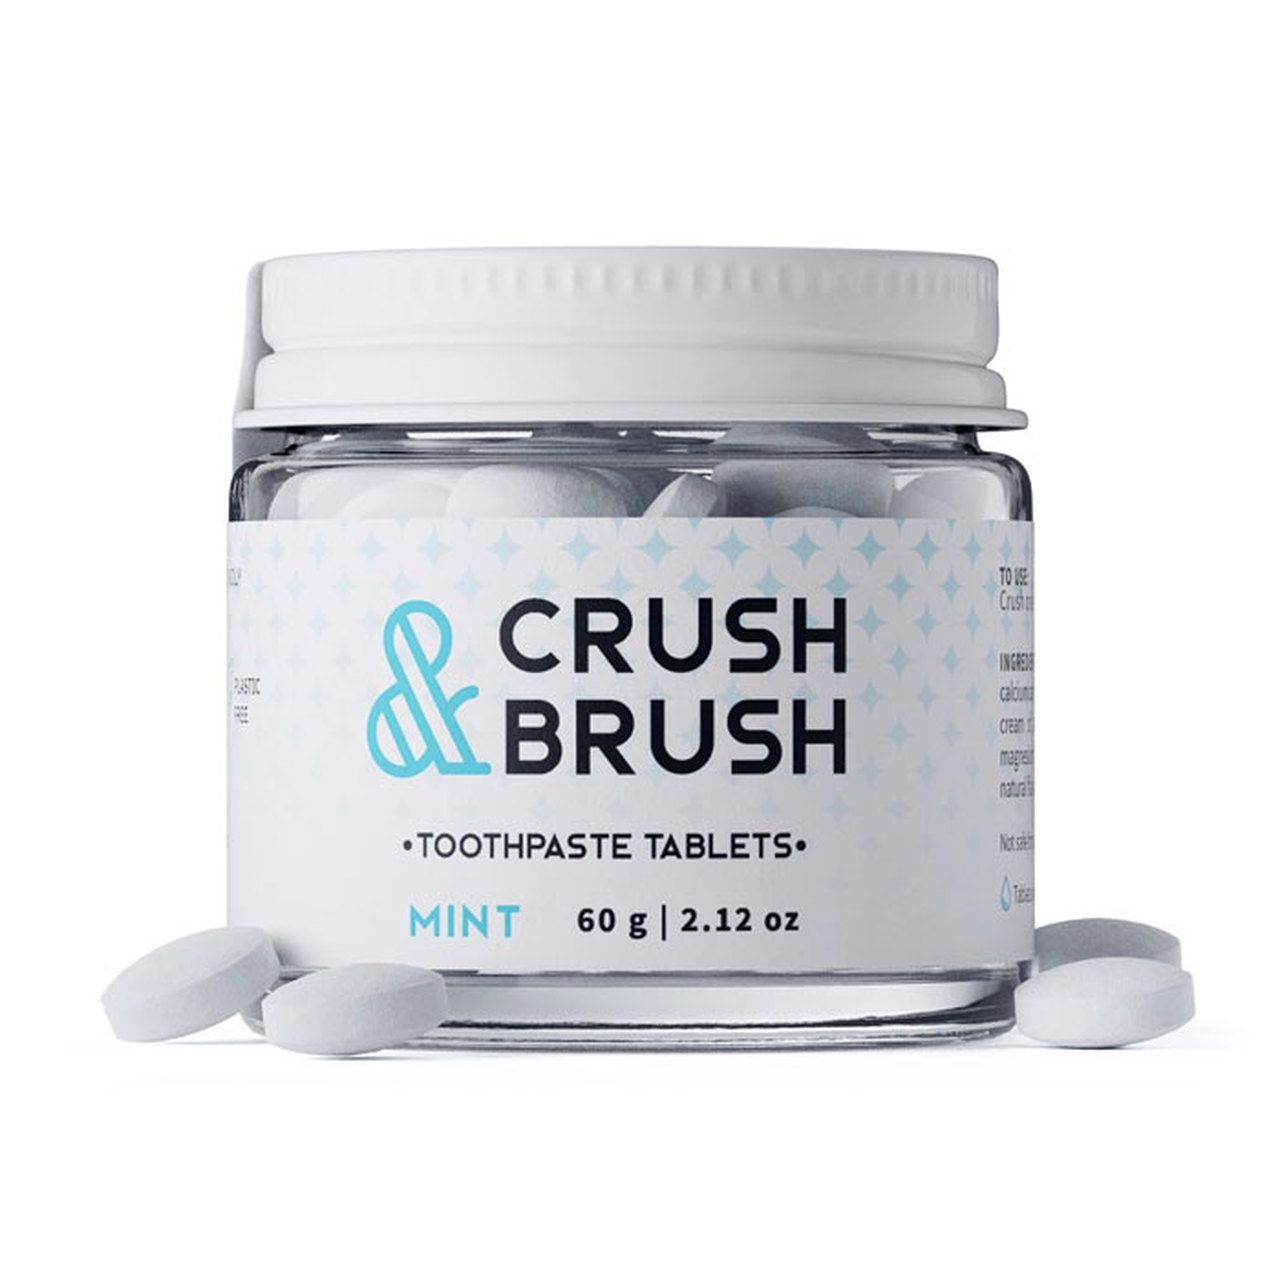 Nelson Naturals Crush & Brush Toothpaste Tablets Mint in